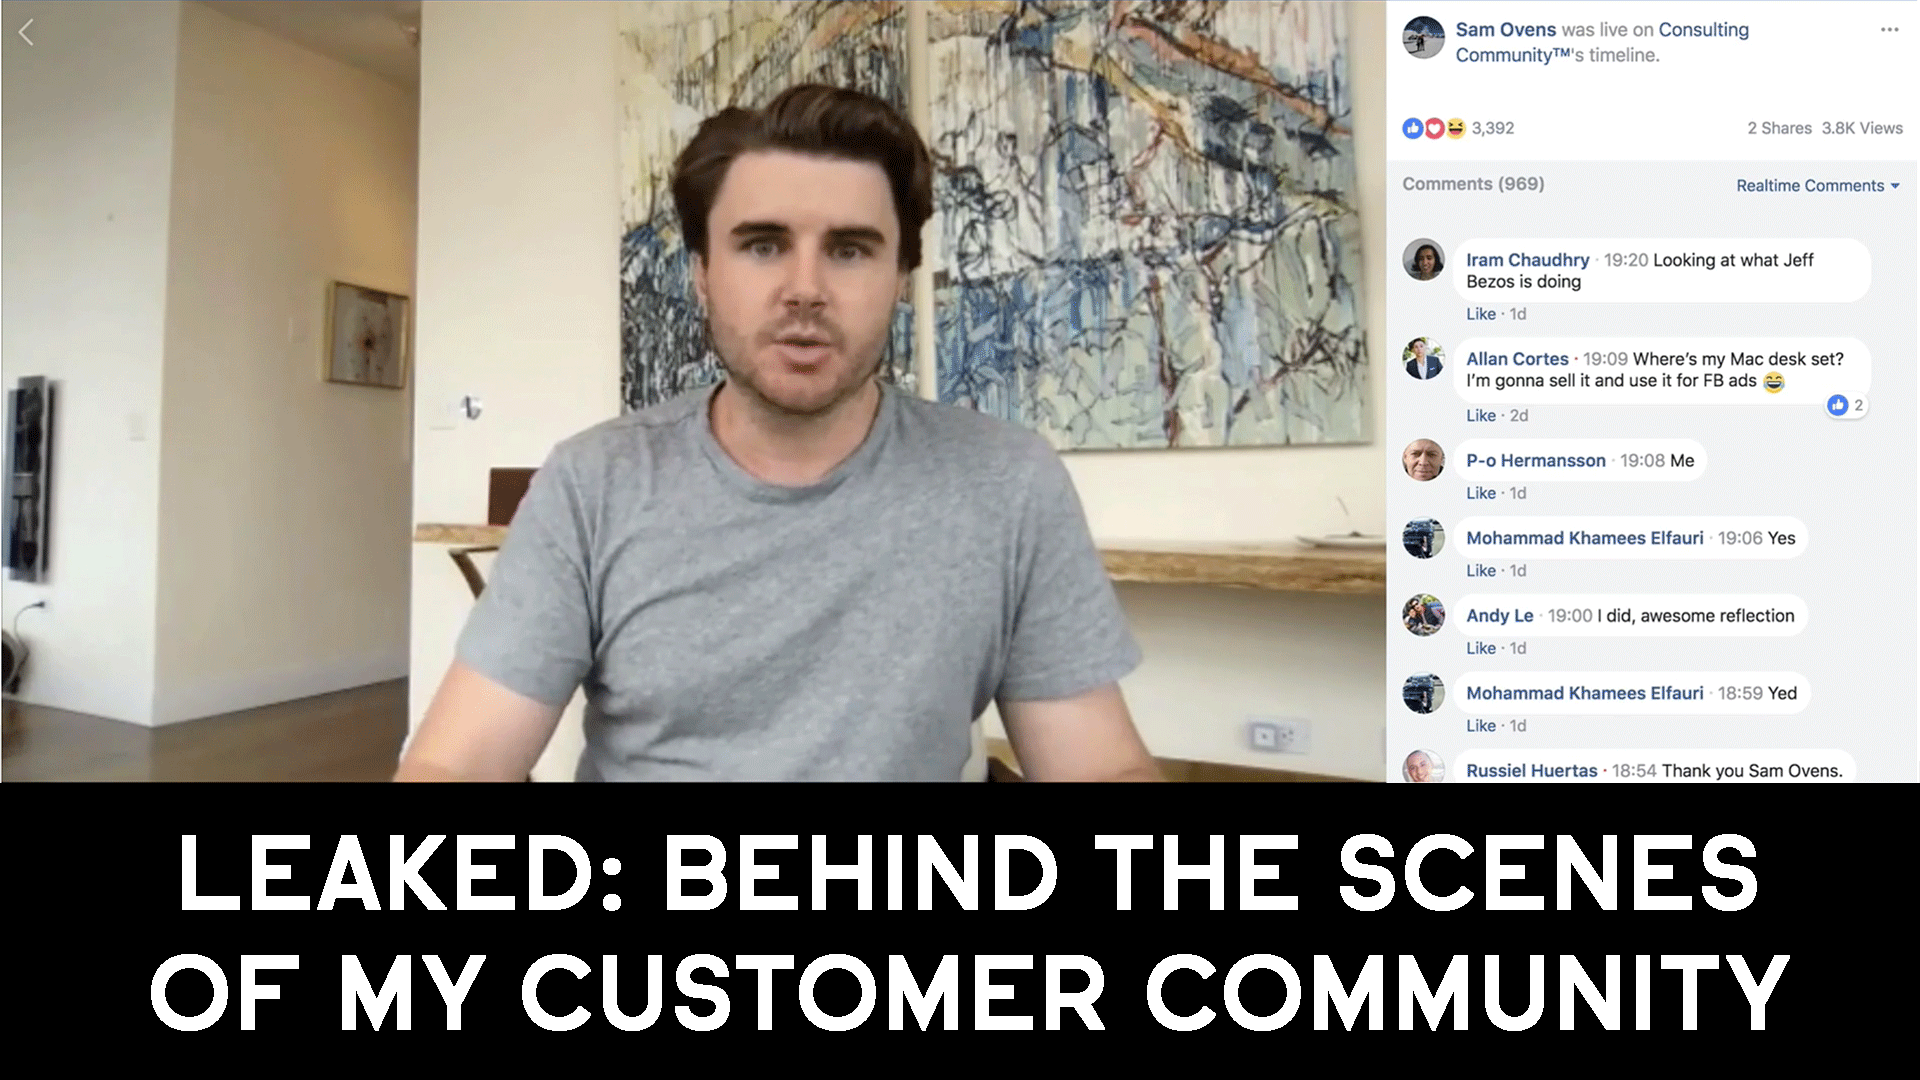 LEAKED: Behind The Scenes Of My Customer Community